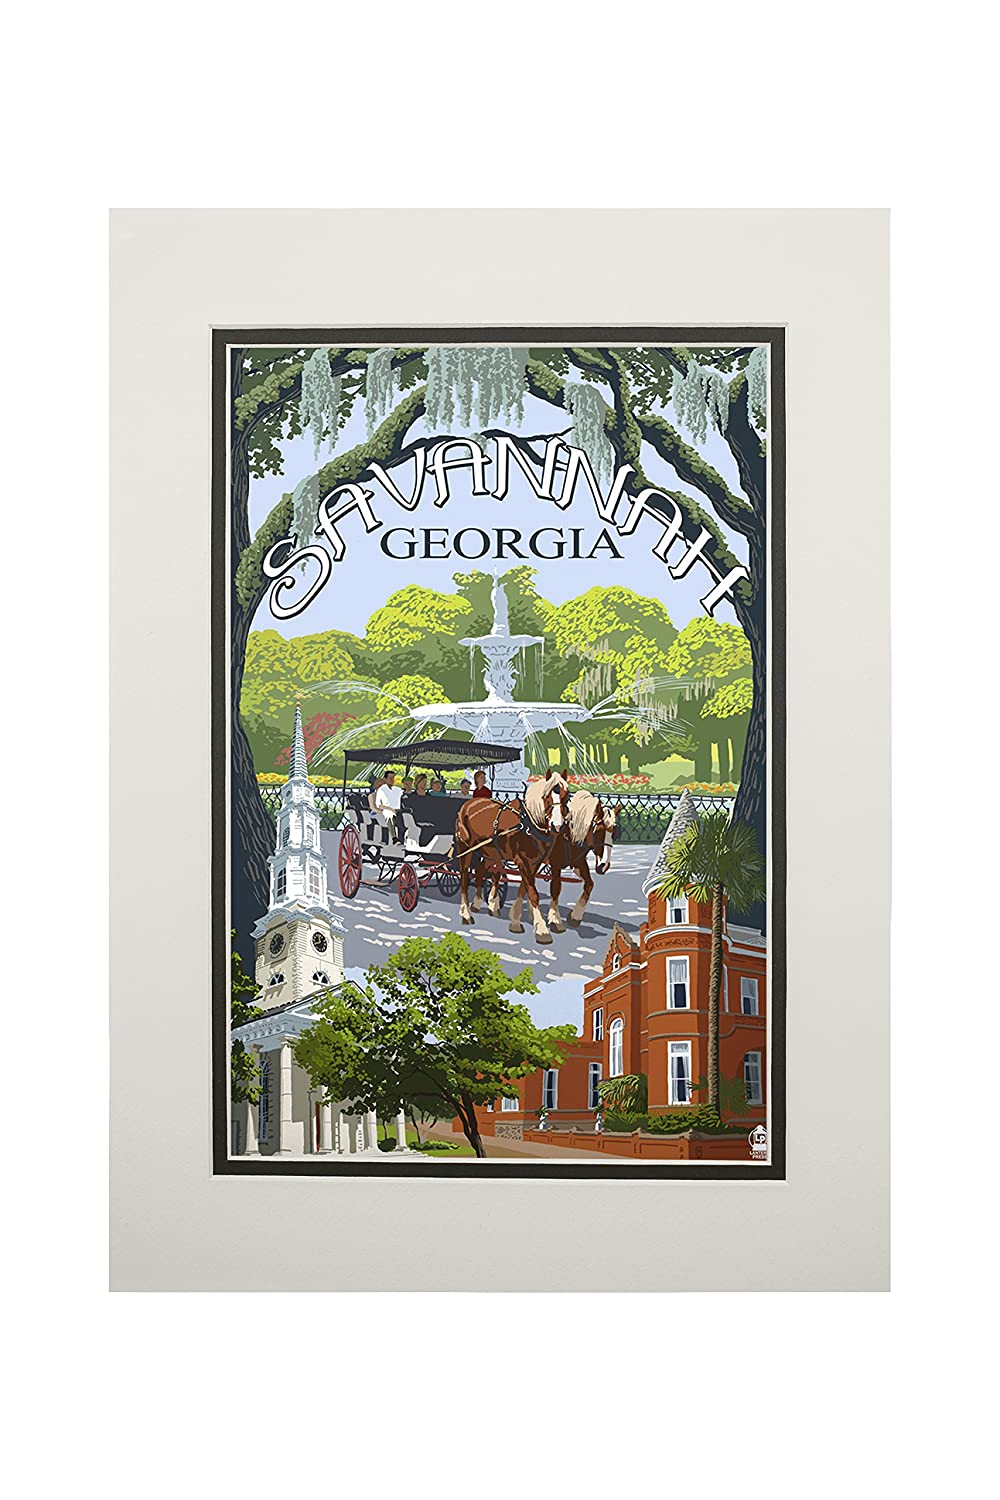 夏セール開催中 MAX80%OFF! Savannah, Art Georgia Town by Views (9x12 Art Art Print, Wall Decor Travel Poster) by Lantern Press B06XZPG624 11 x 14 Matted Art Print 11 x 14 Matted Art Print, 自転車通販CANDY:1d28ddeb --- arianechie.dominiotemporario.com